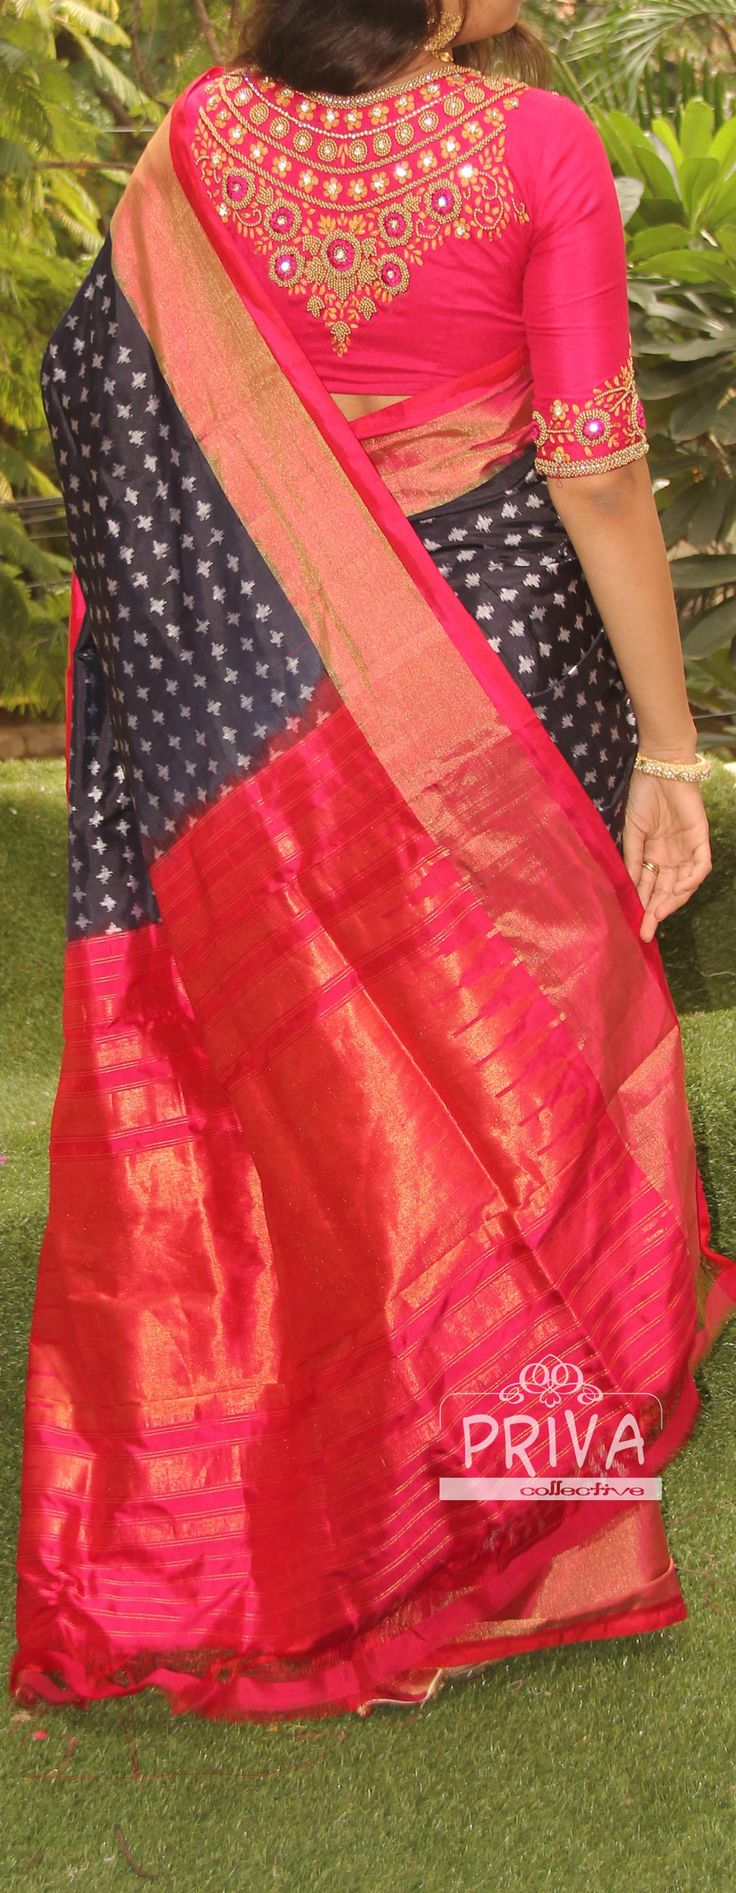 Festive Collection of Ikkat Pattu sarees will be posted tonight 1st October 2016 at 7 pm IST